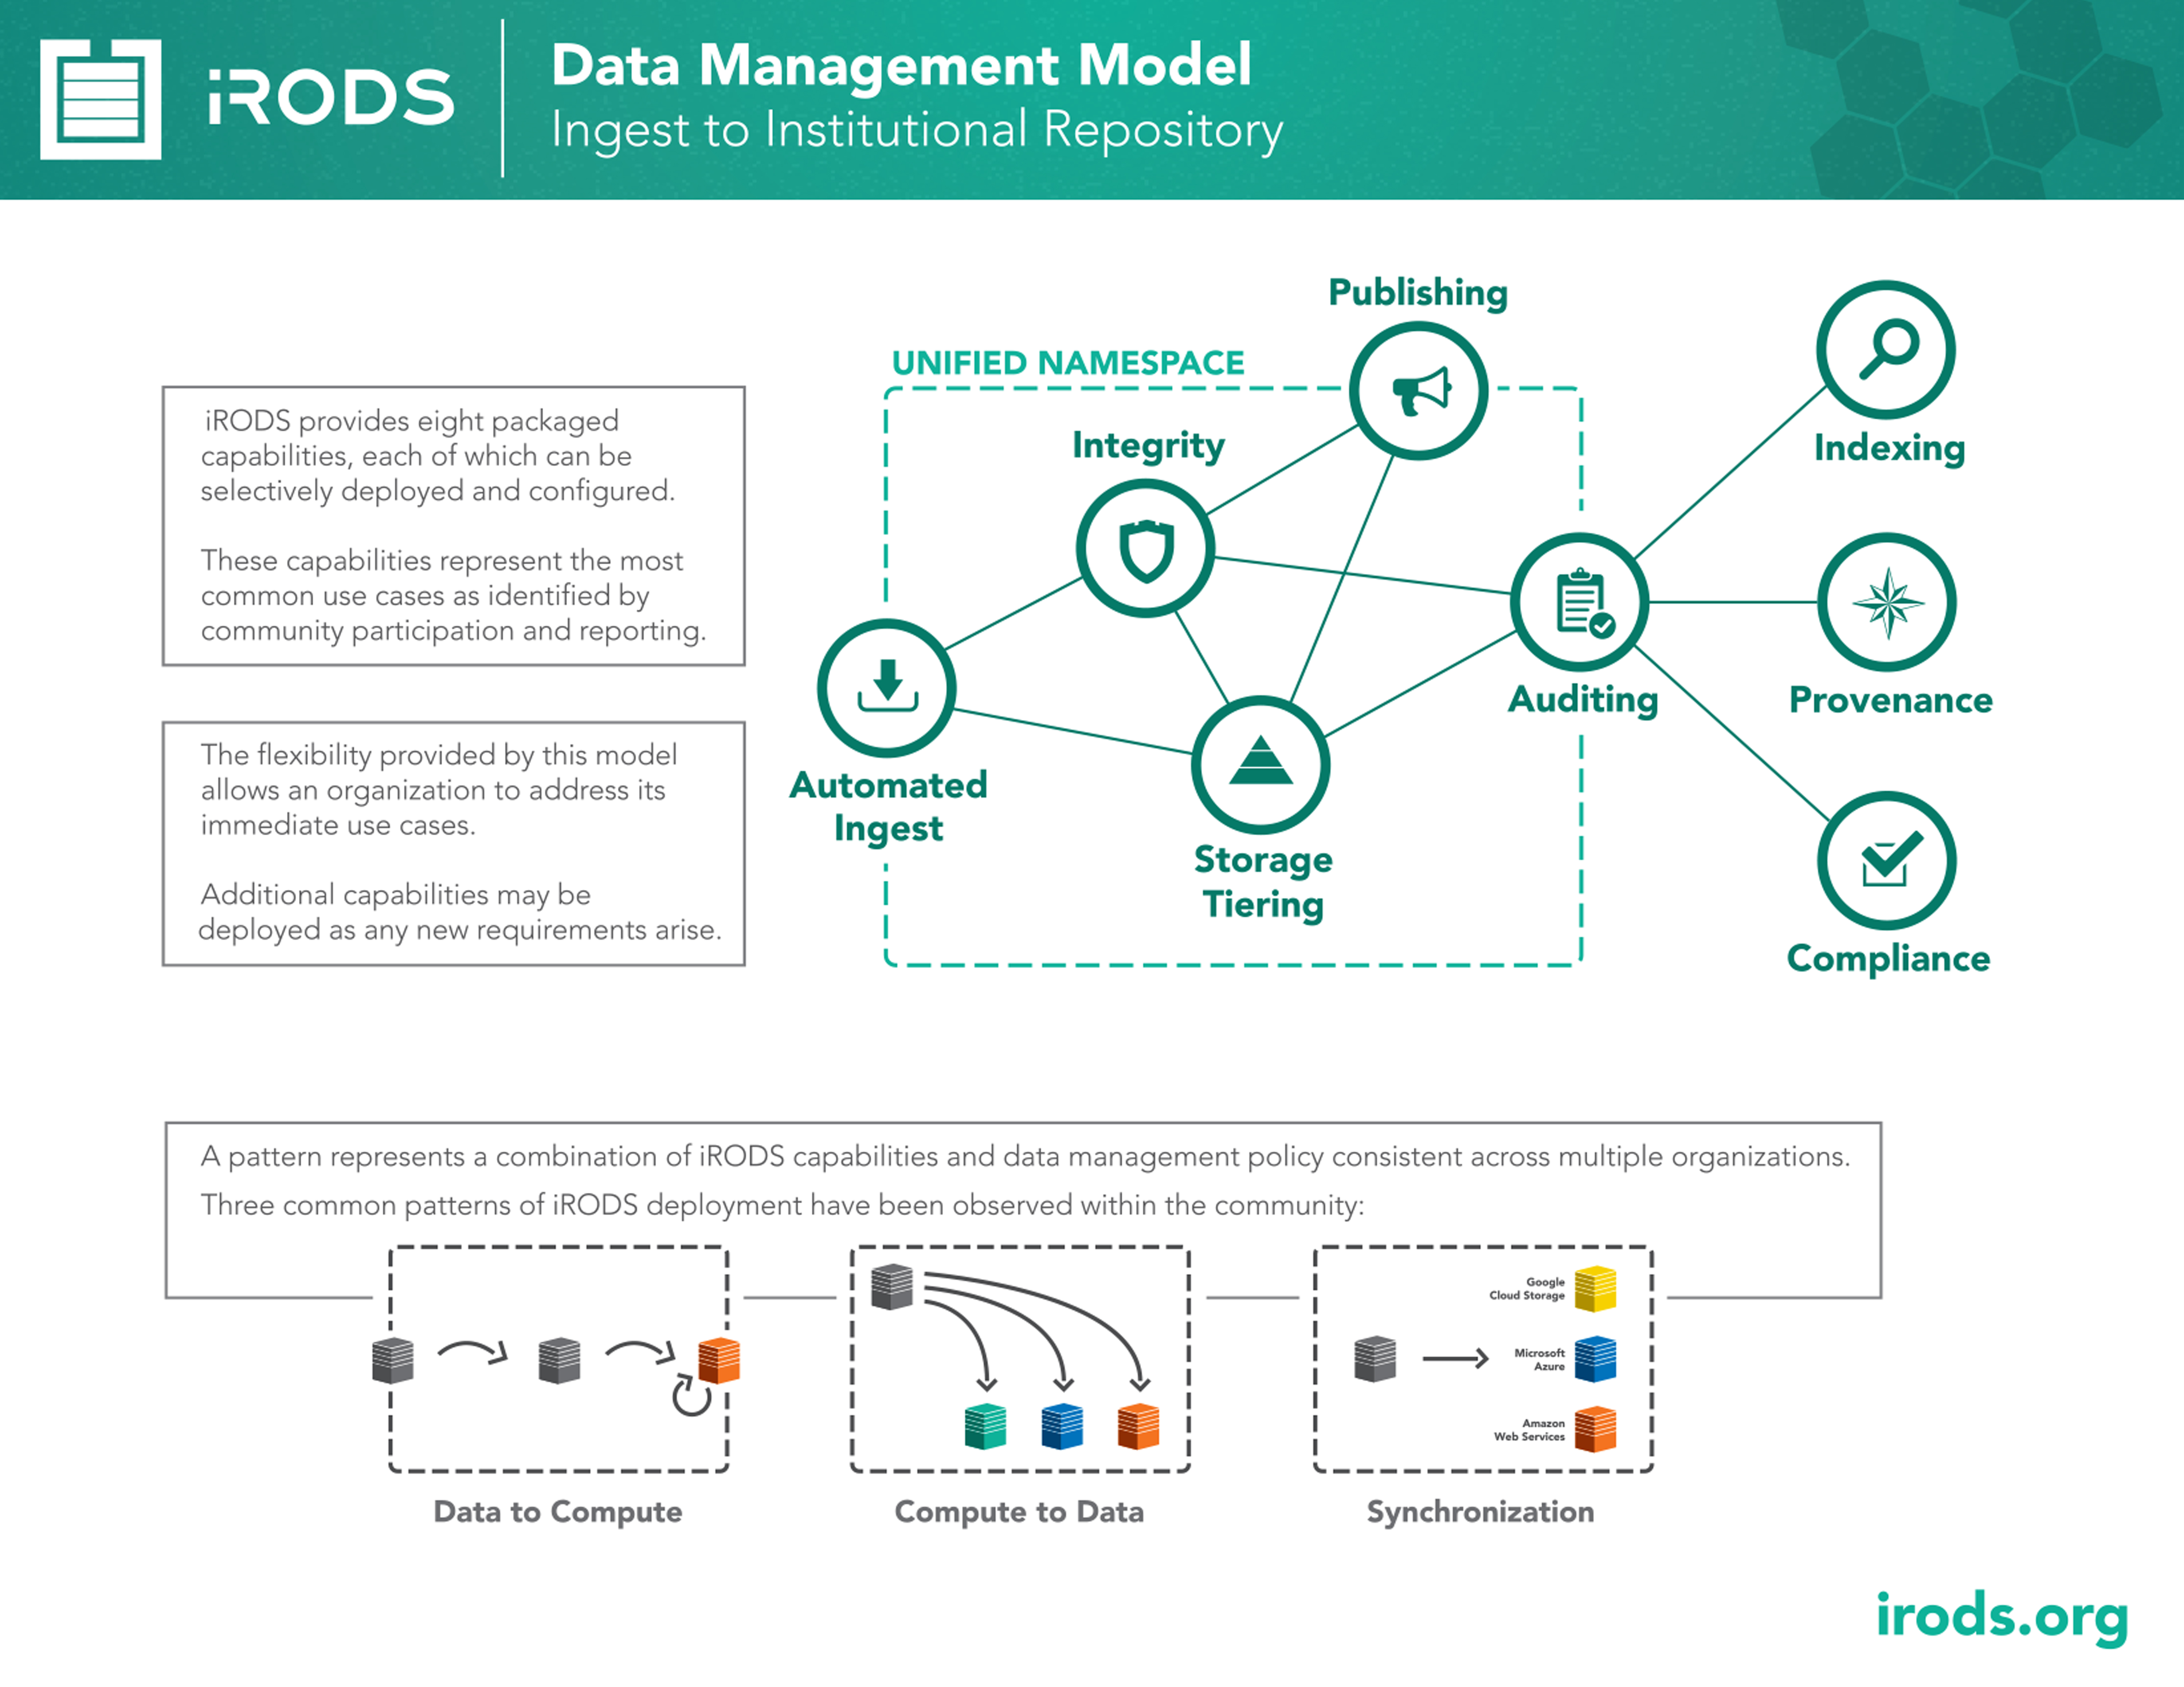 Irods Vigilant Network Setup Diagram Provides Eight Packaged Capabilities Each Of Which Can Be Selectively Deployed And Configured Usually Into Known Patterns